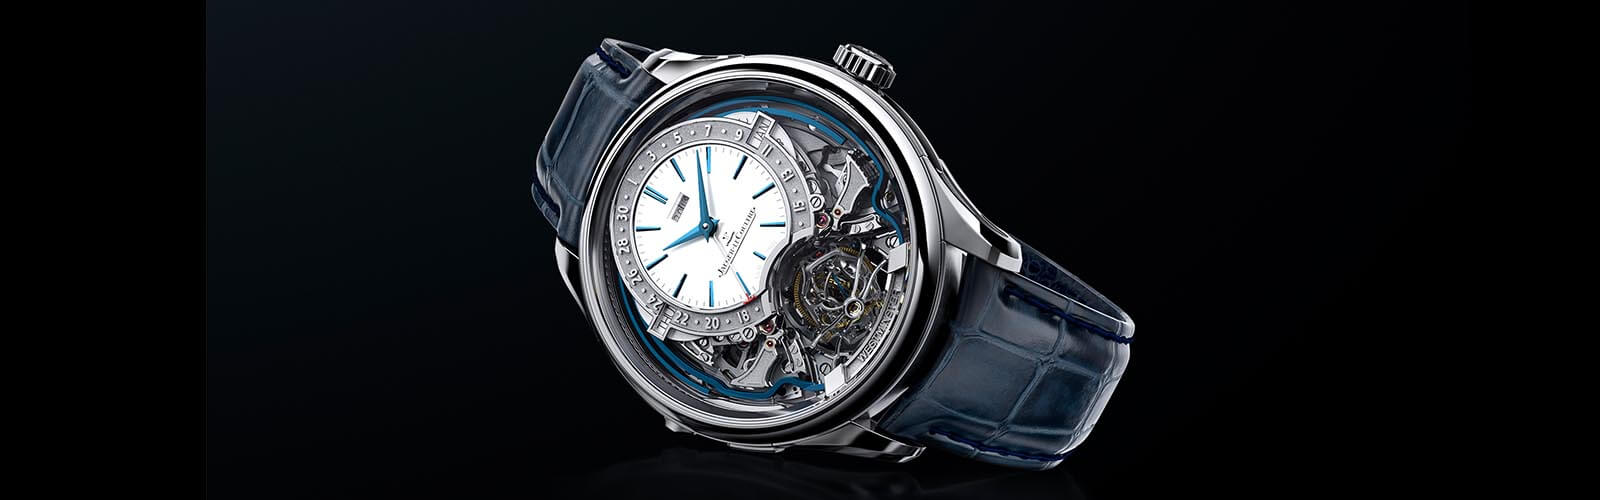 JAEGER LECOULTRE Master-Grande-Tradition-Gyrotourbillon-Westminster-Perpetuel-Header2